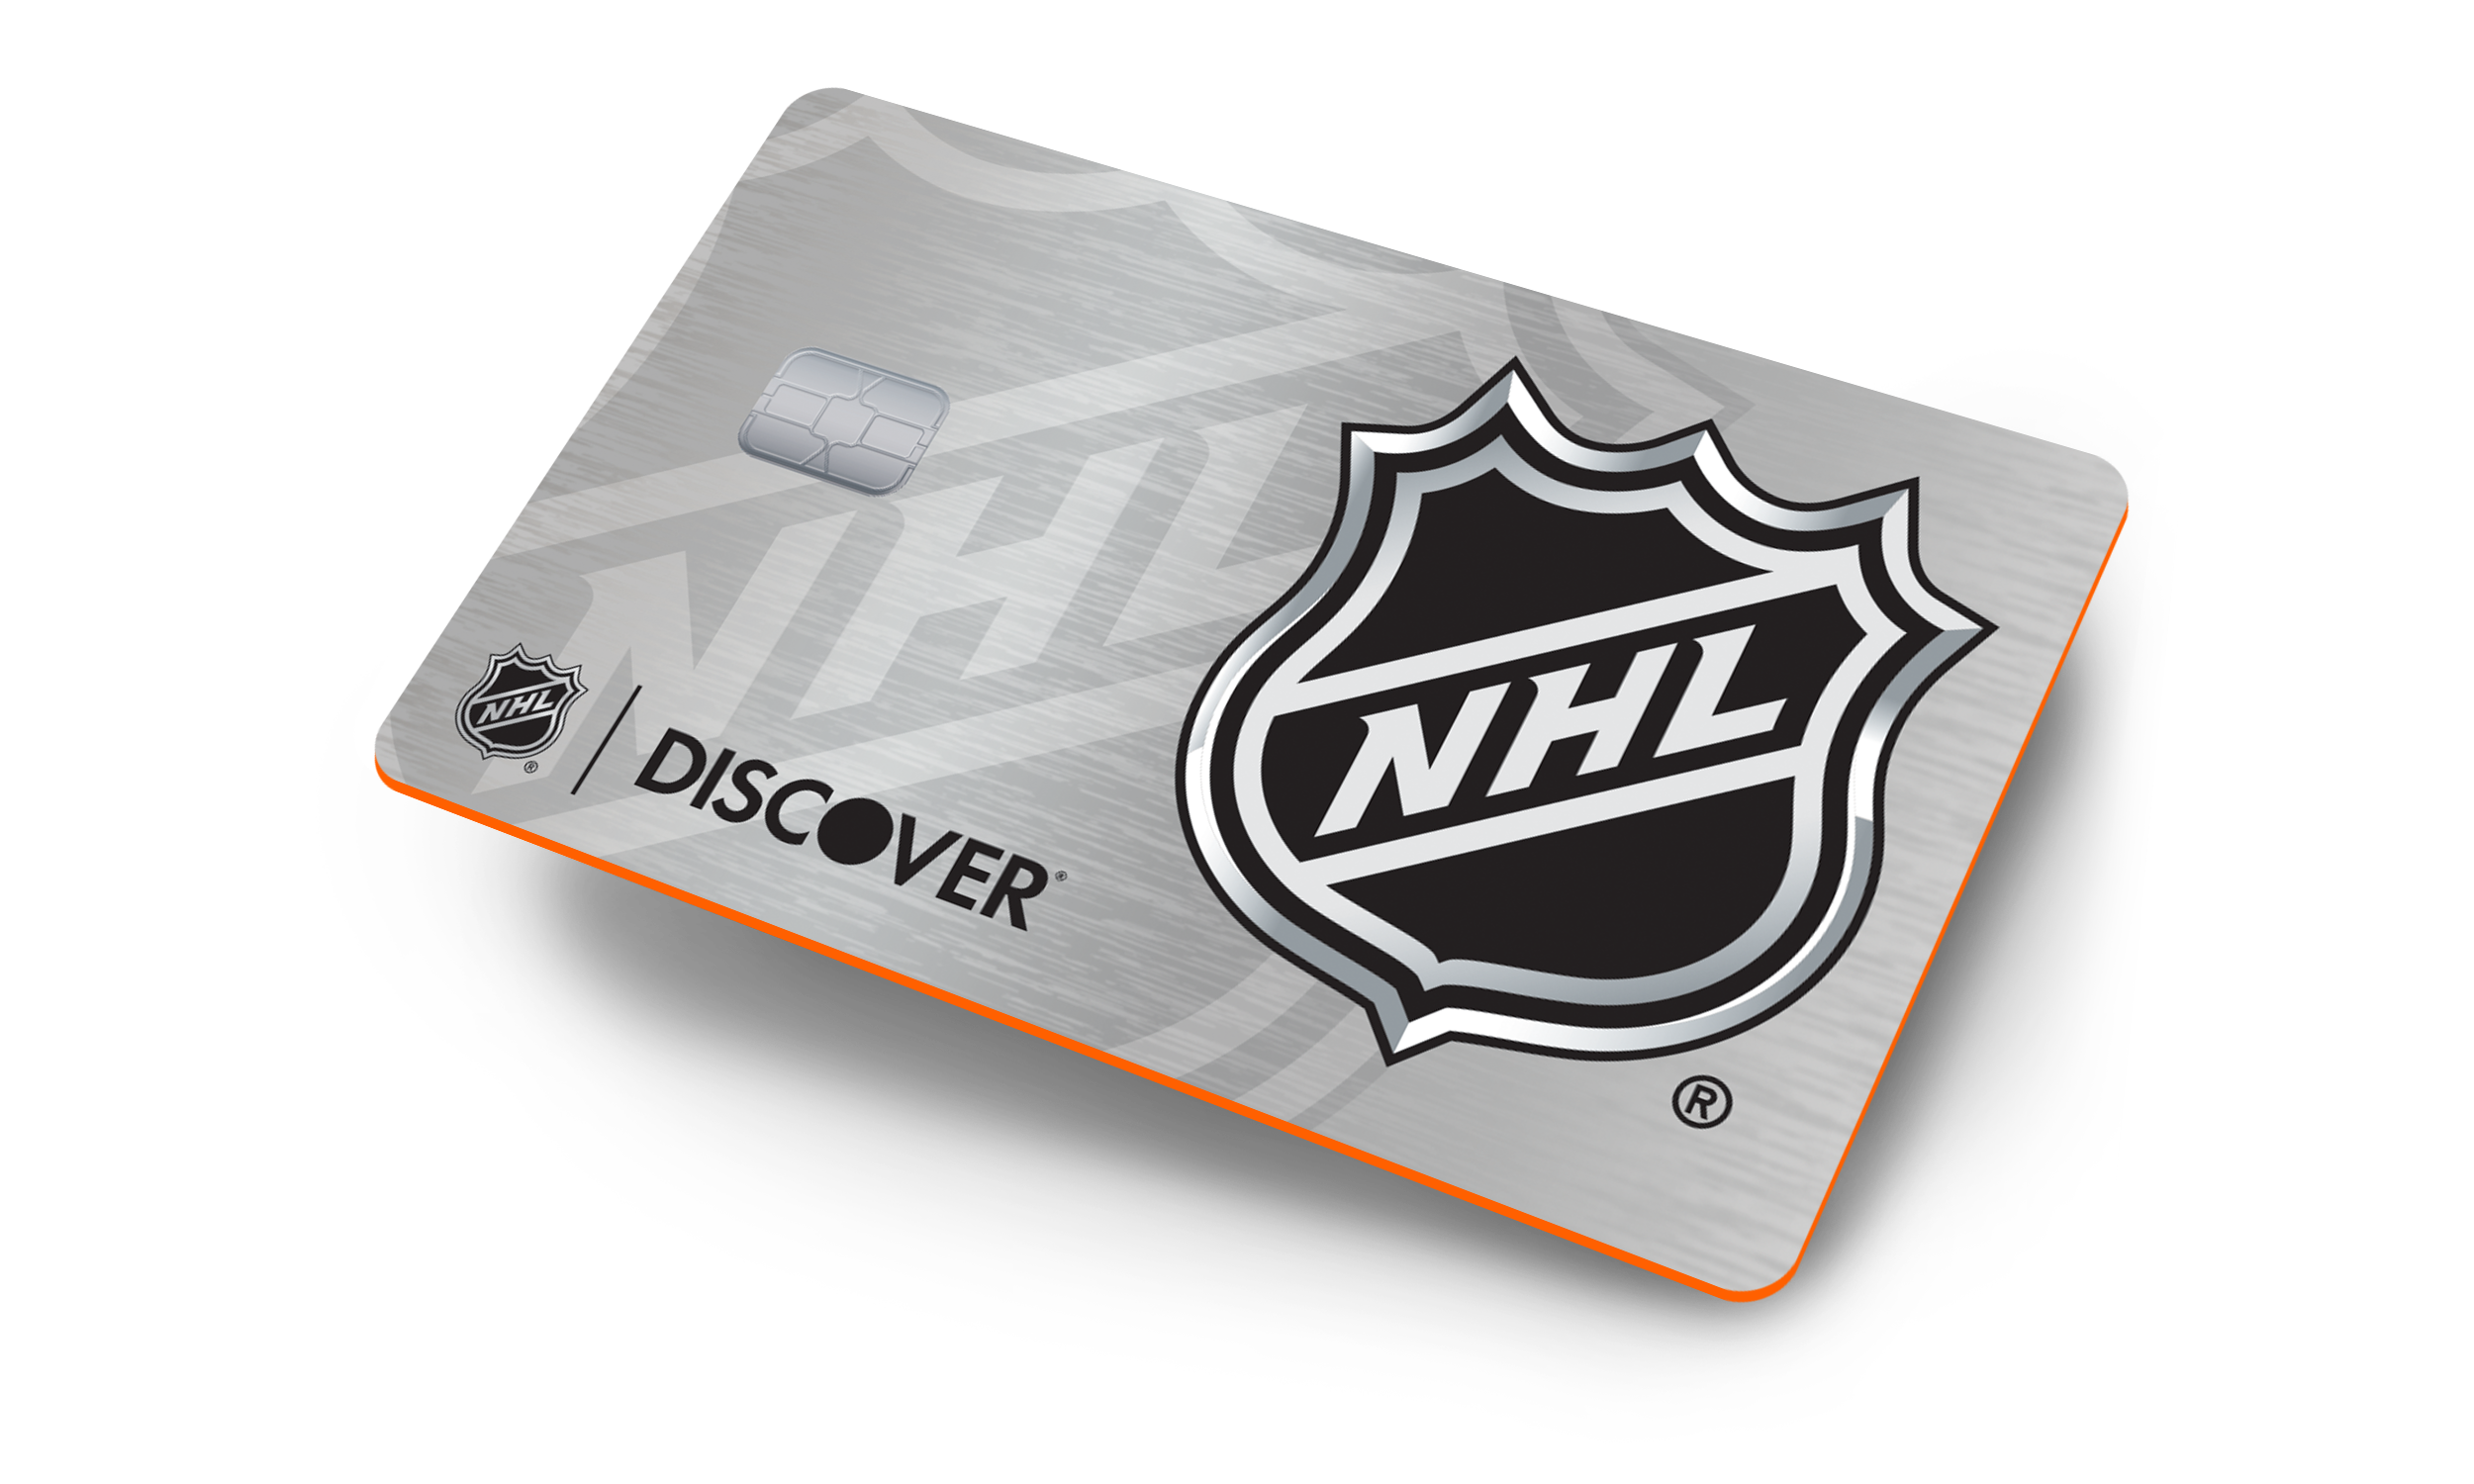 Discover NHL Card